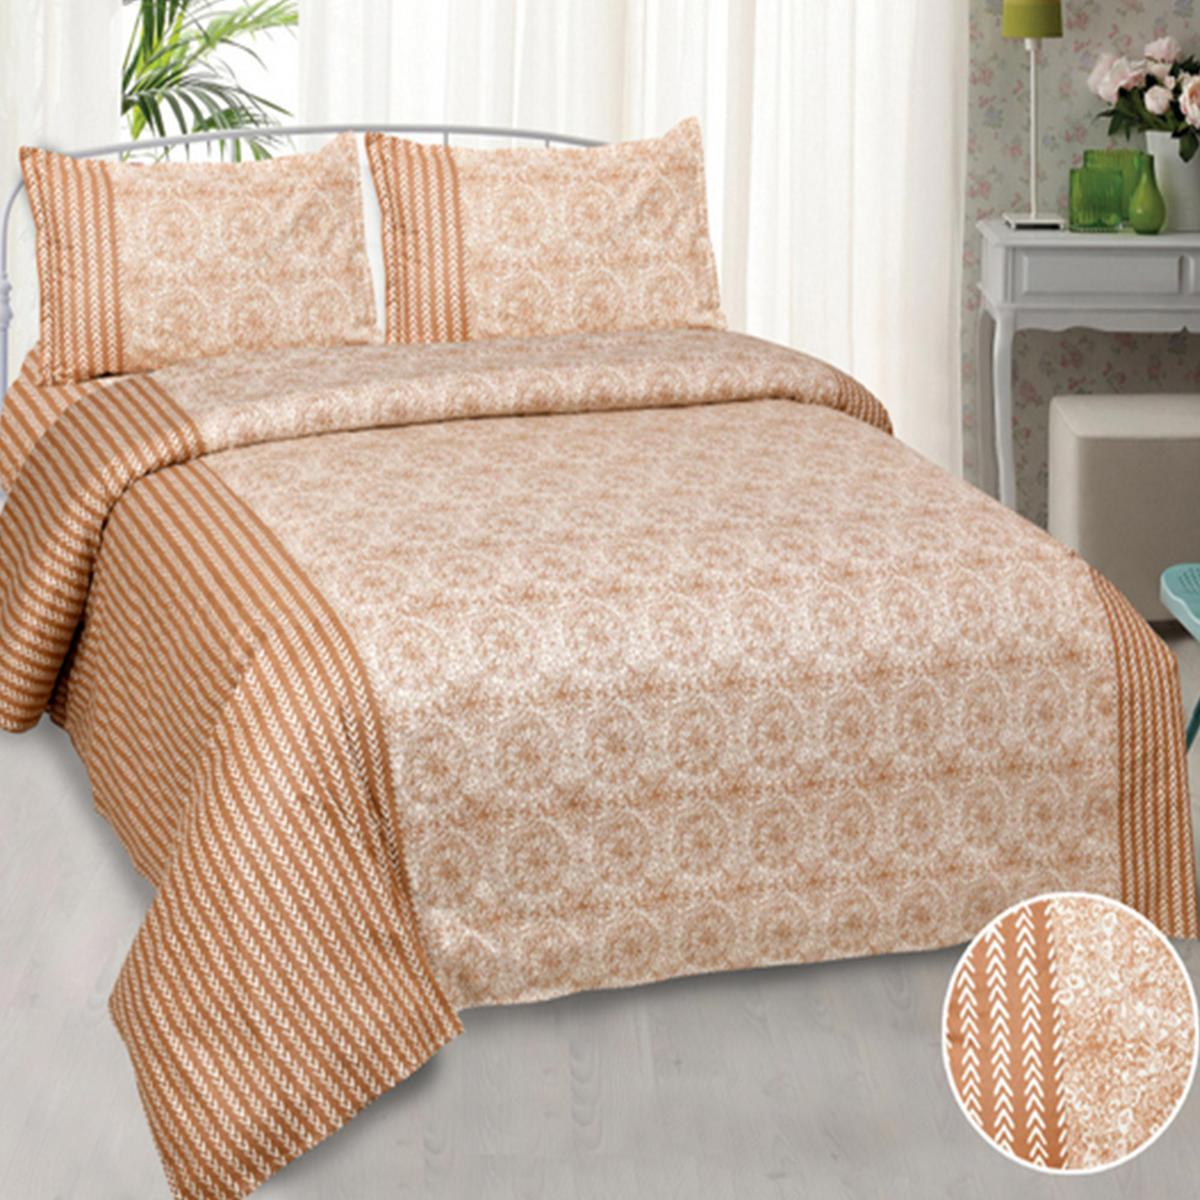 Jaipur Fabric Amazing Creamish Sunflower Pure Cotton King Size Double Bedsheet with 2 Pillow Cover